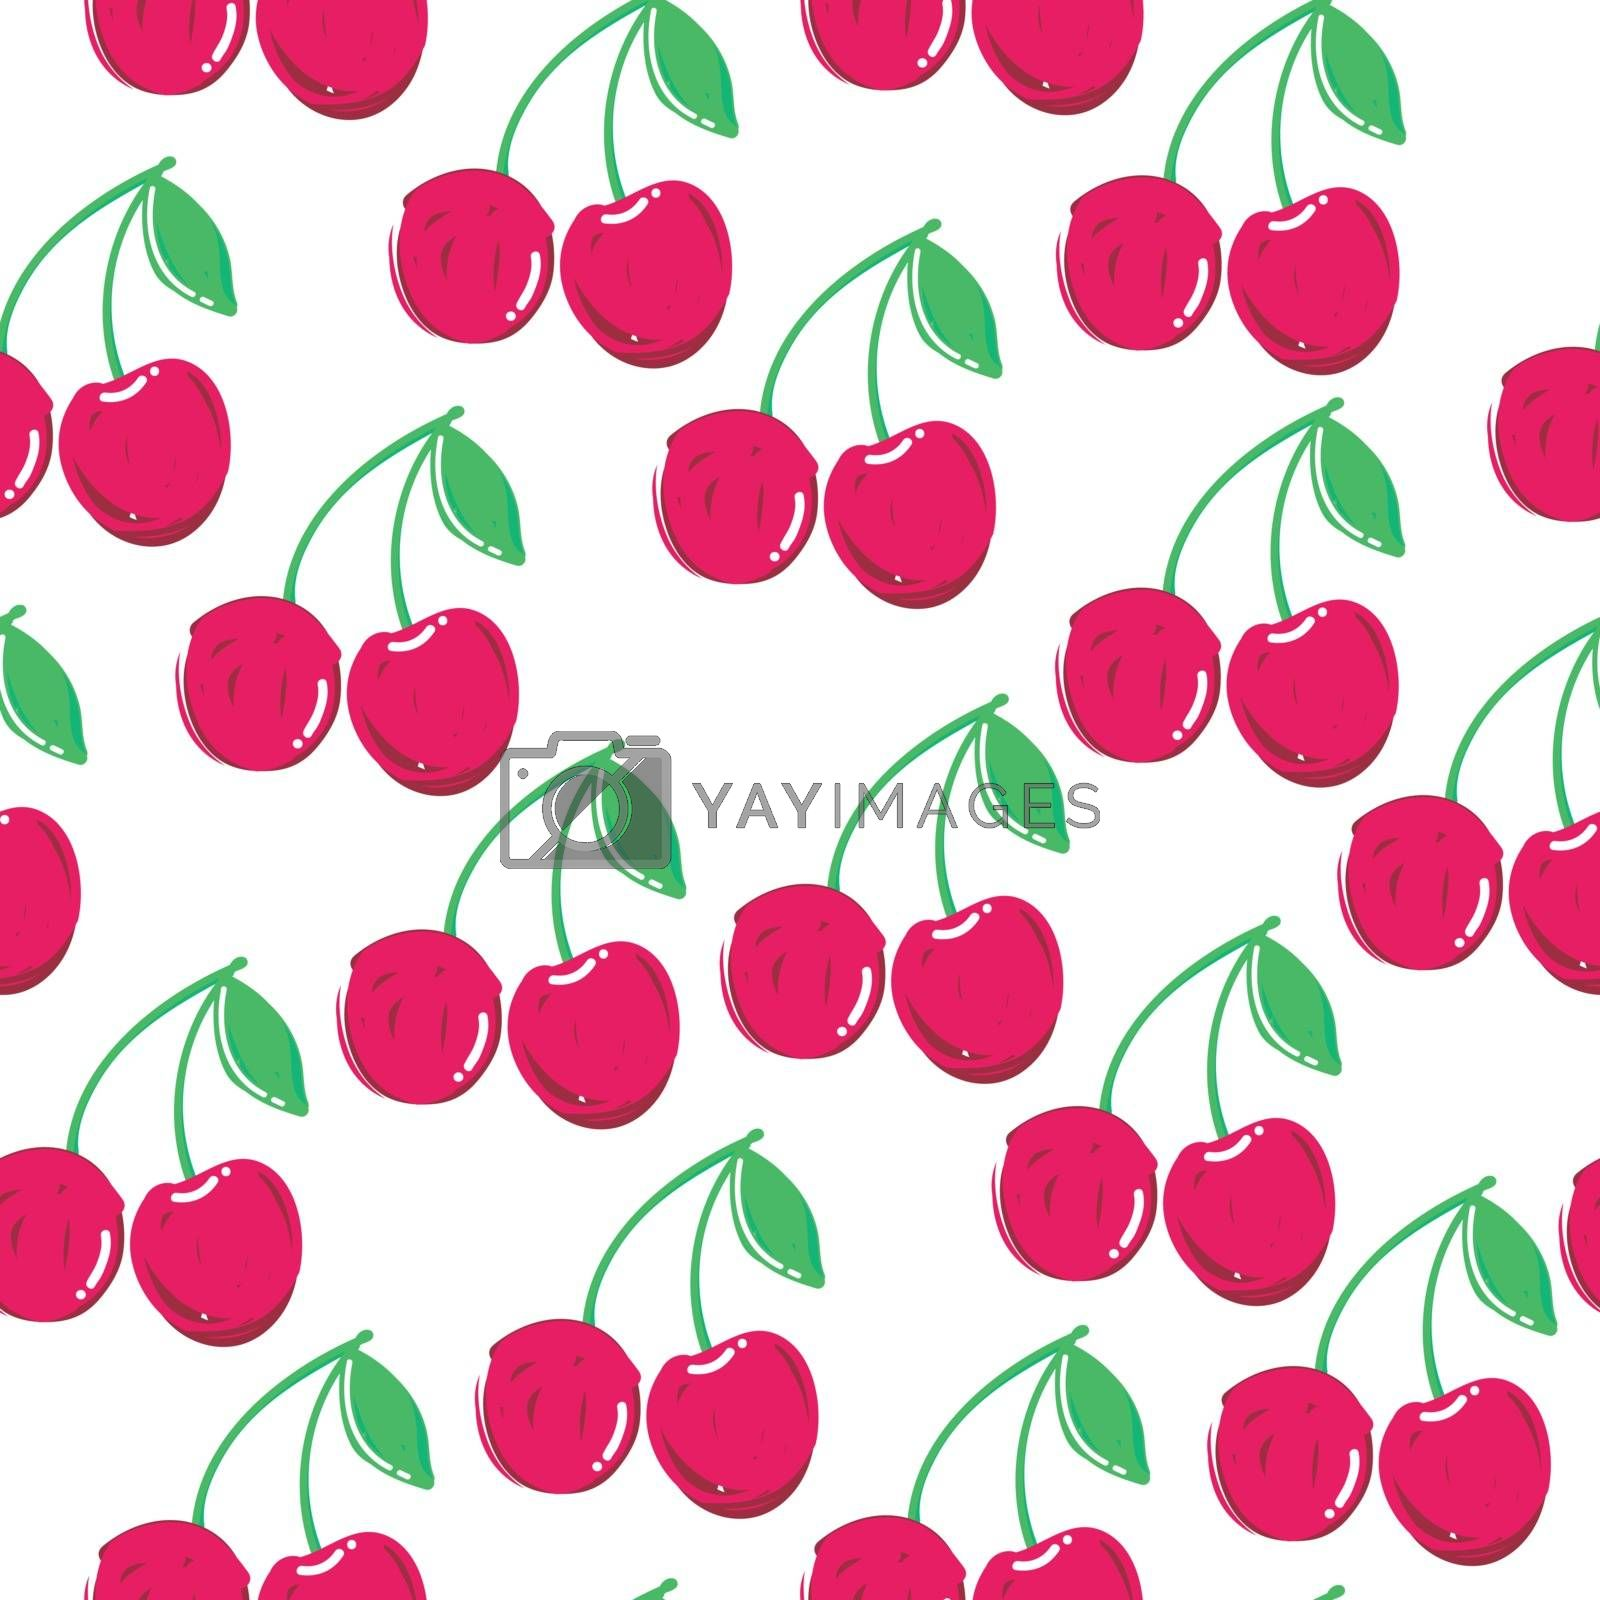 Summer fashion print with cherries and white. background. Vector seamless pattern